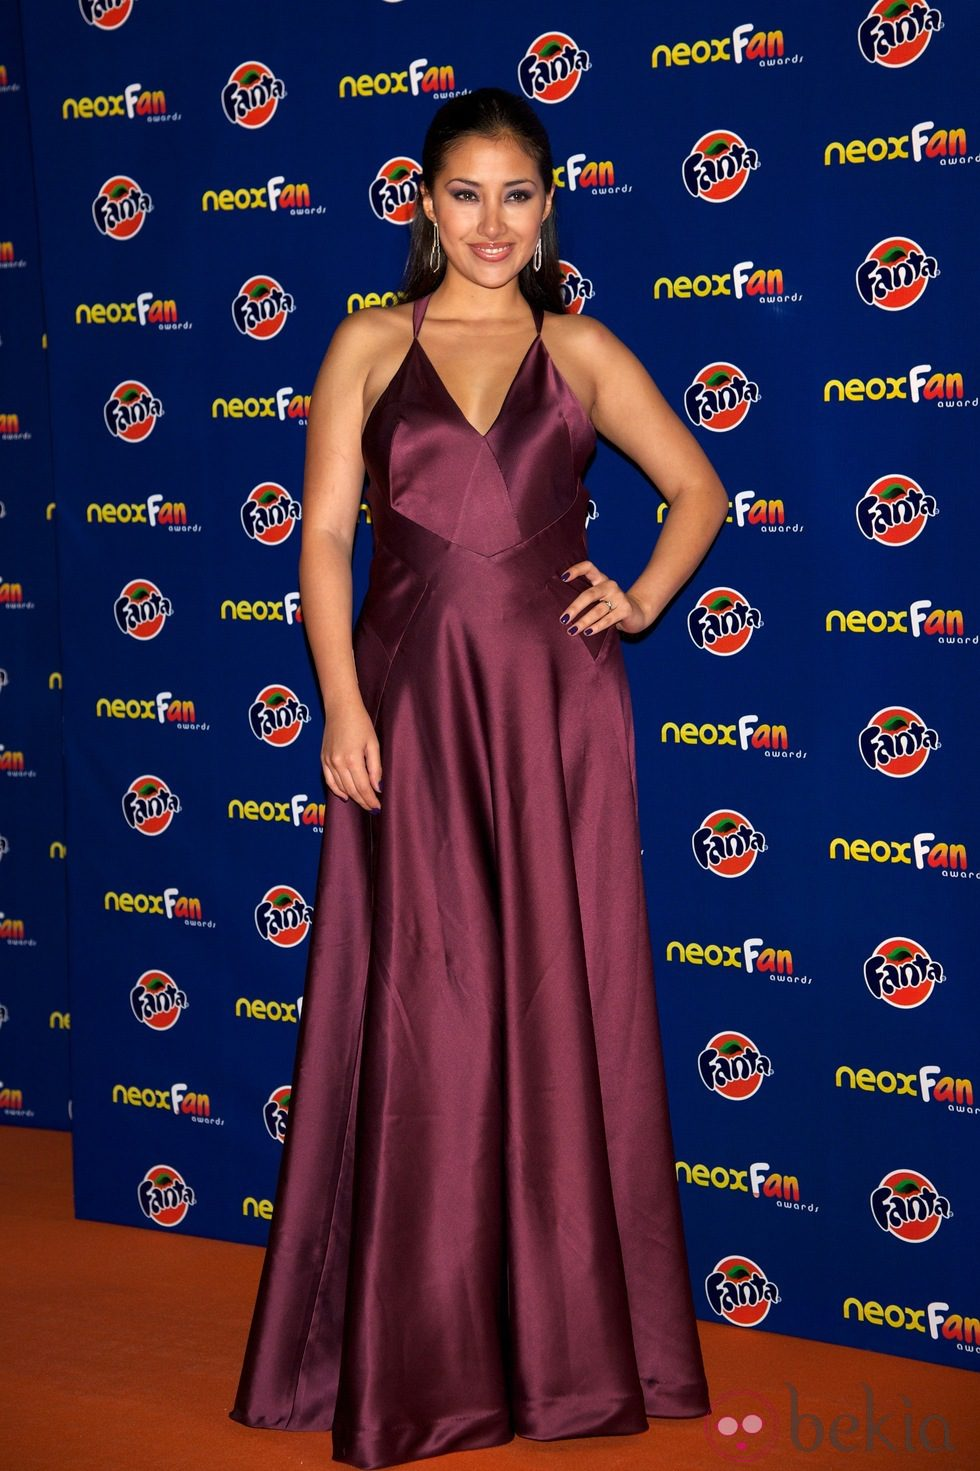 Giselle Calderón en los Neox Fan Awards 2012